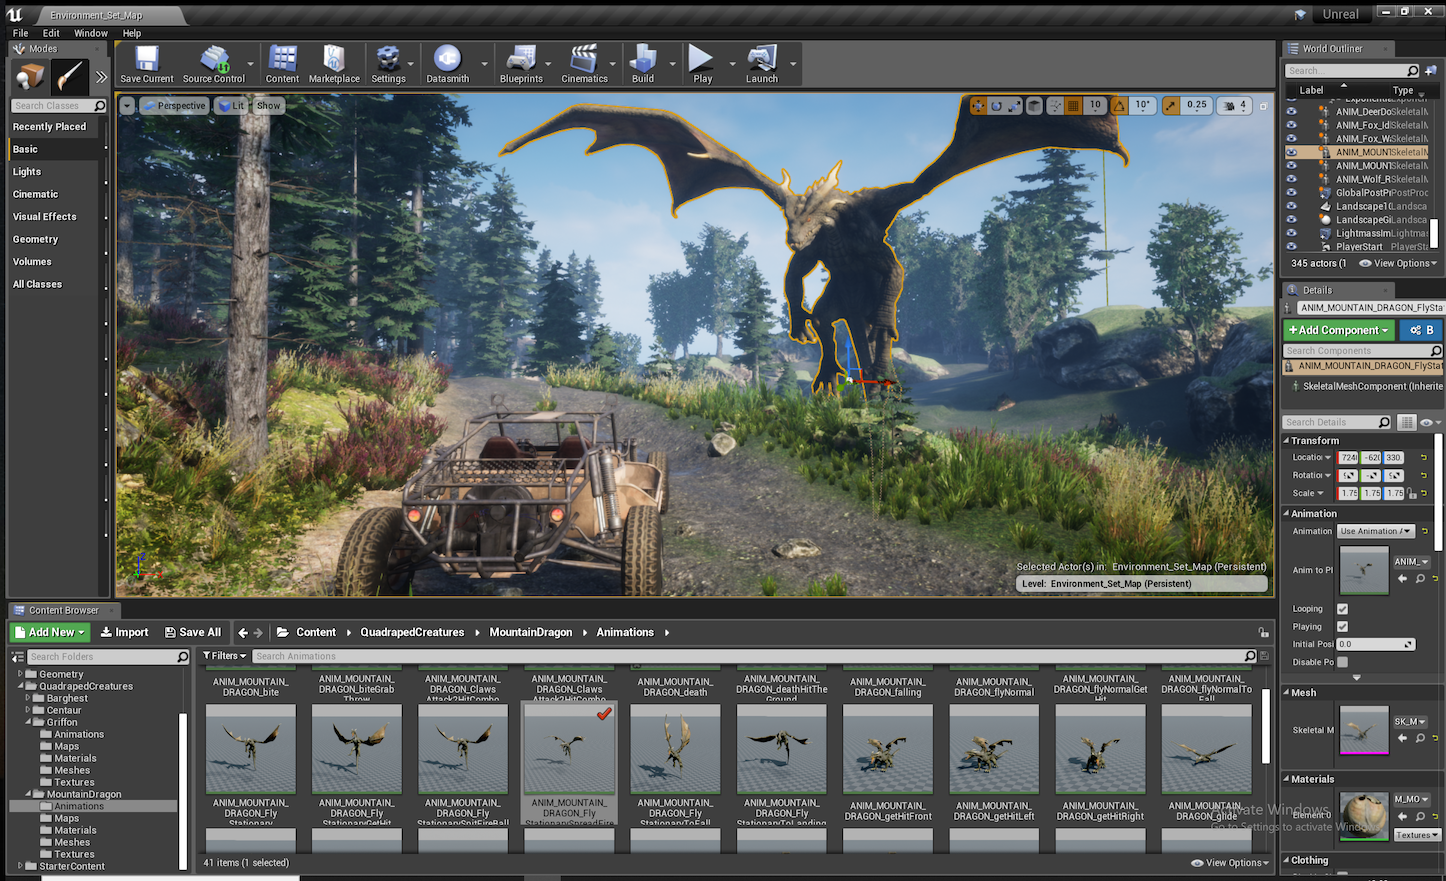 Unreal Engine: How it Changed Gaming